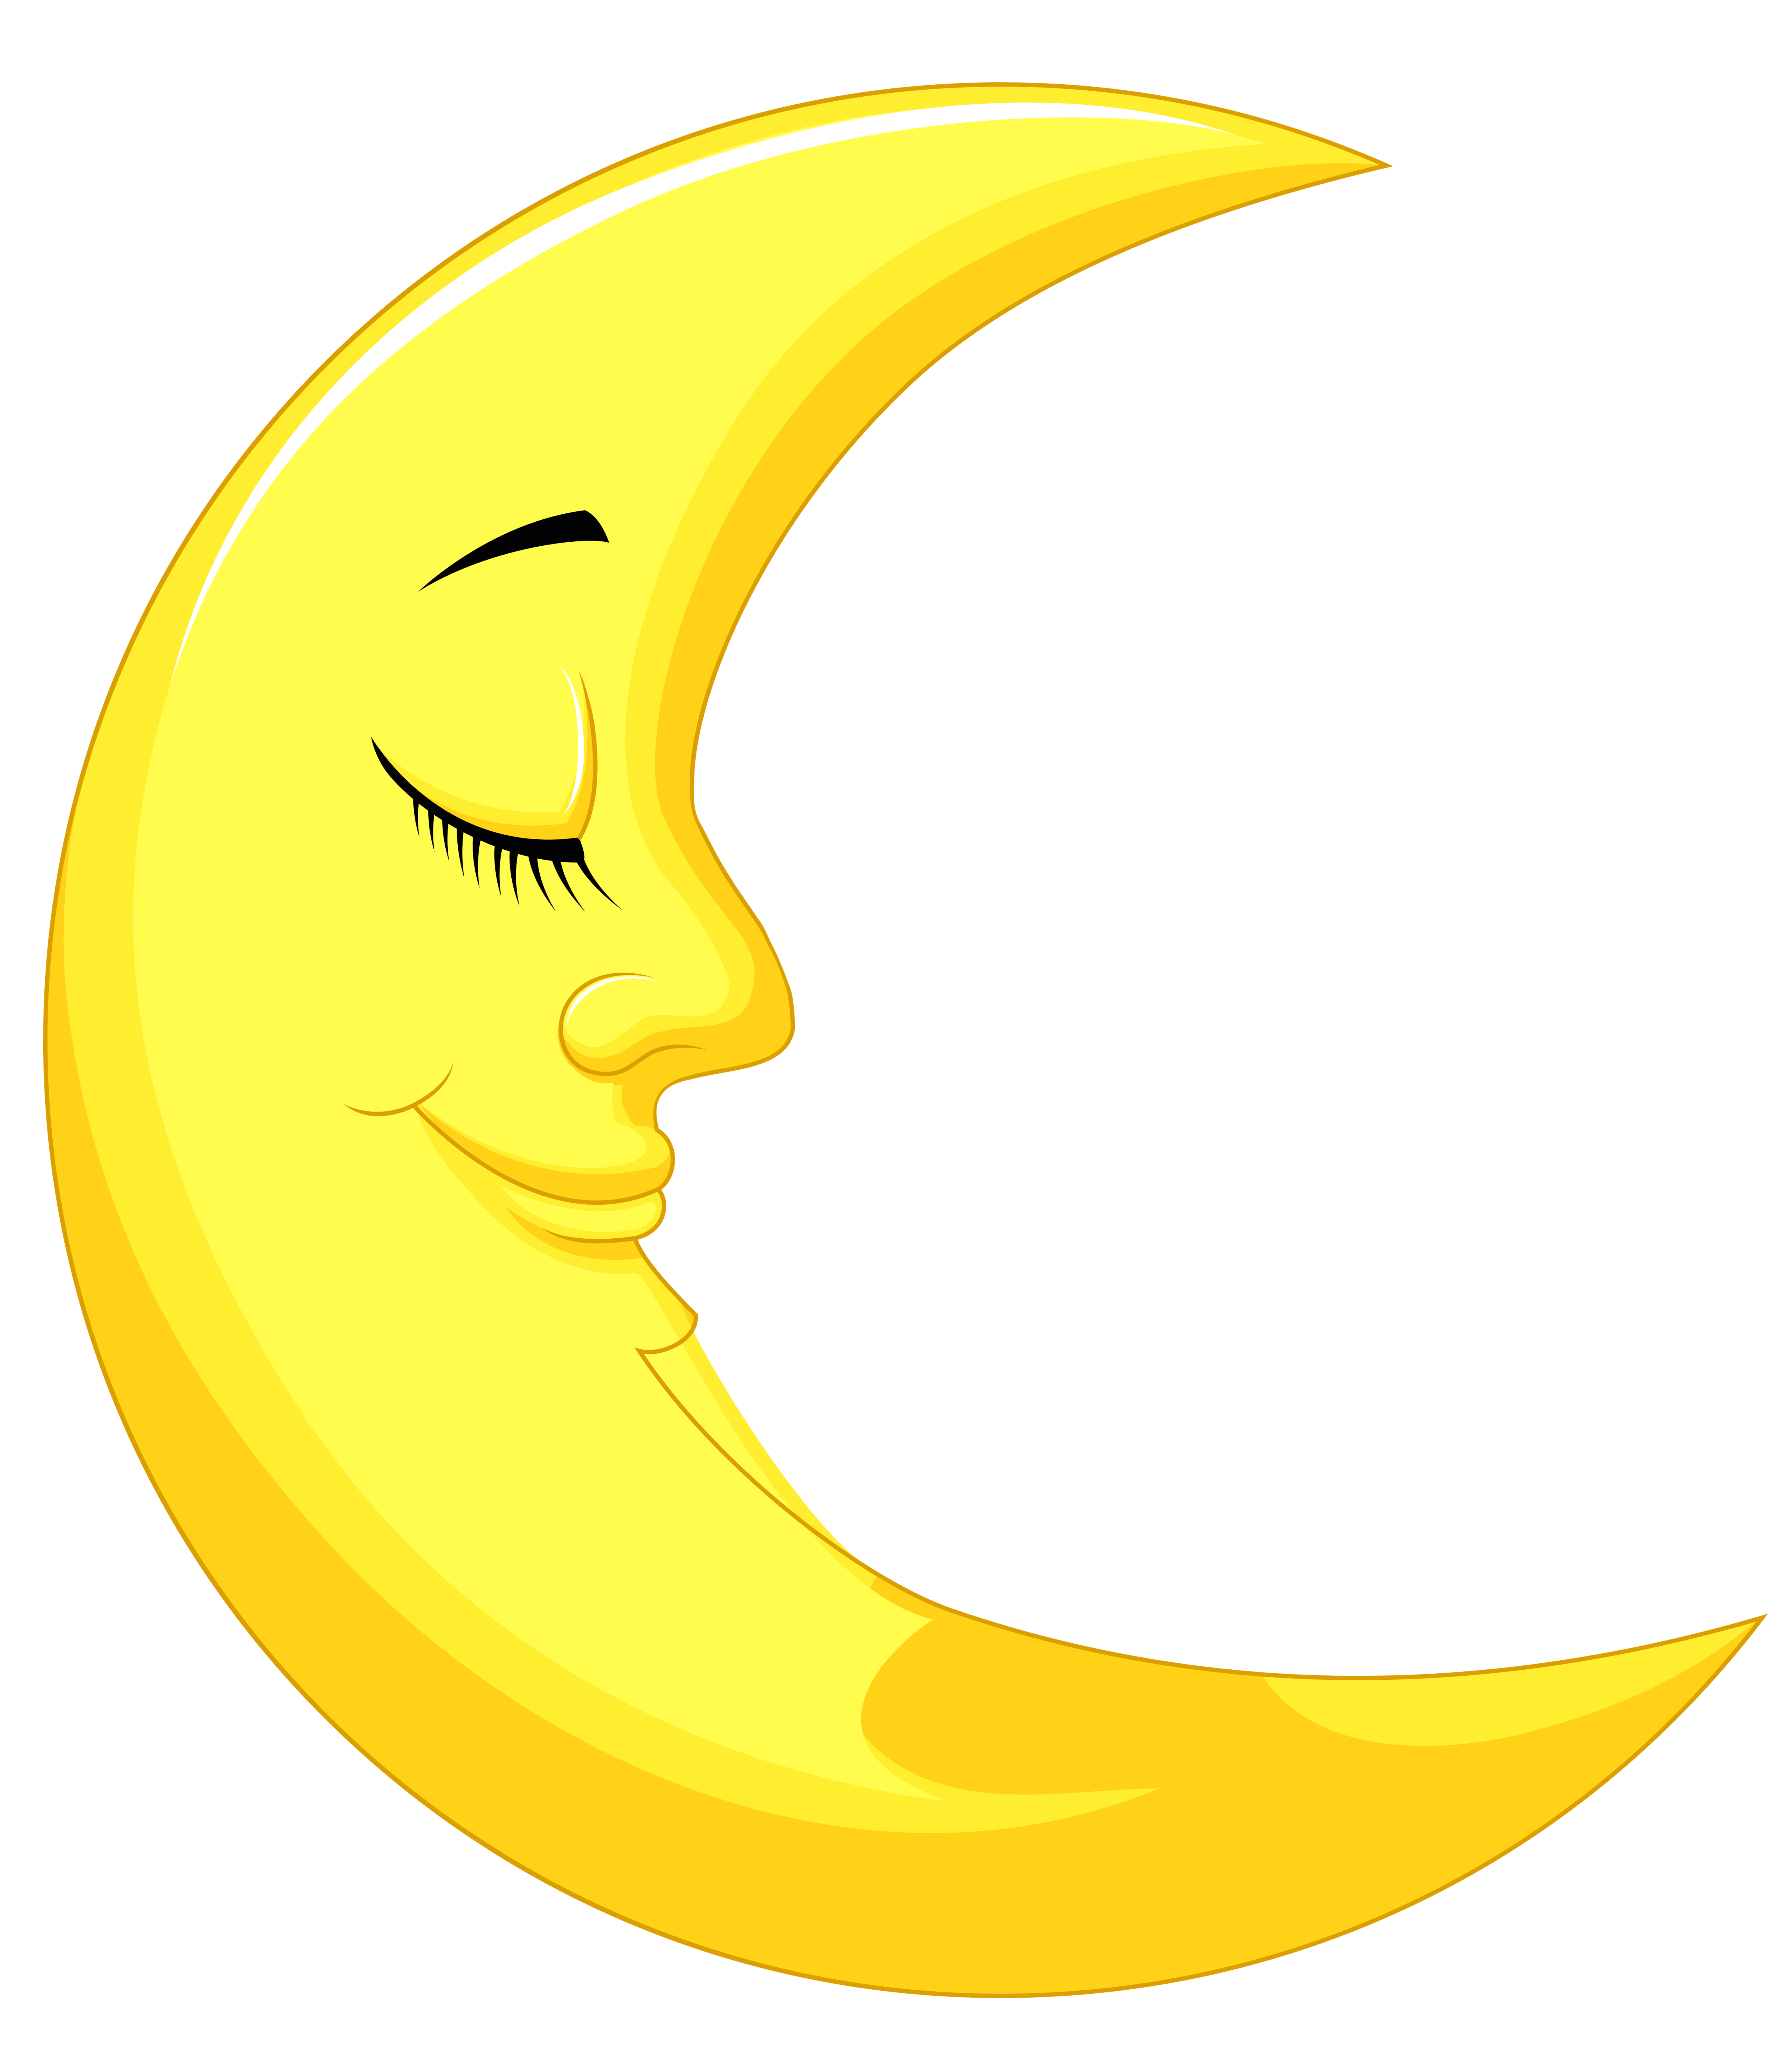 Sun and moon clipart jpg royalty free library Cute Yellow Moon PNG Clipart Picture | Gallery Yopriceville - High ... jpg royalty free library